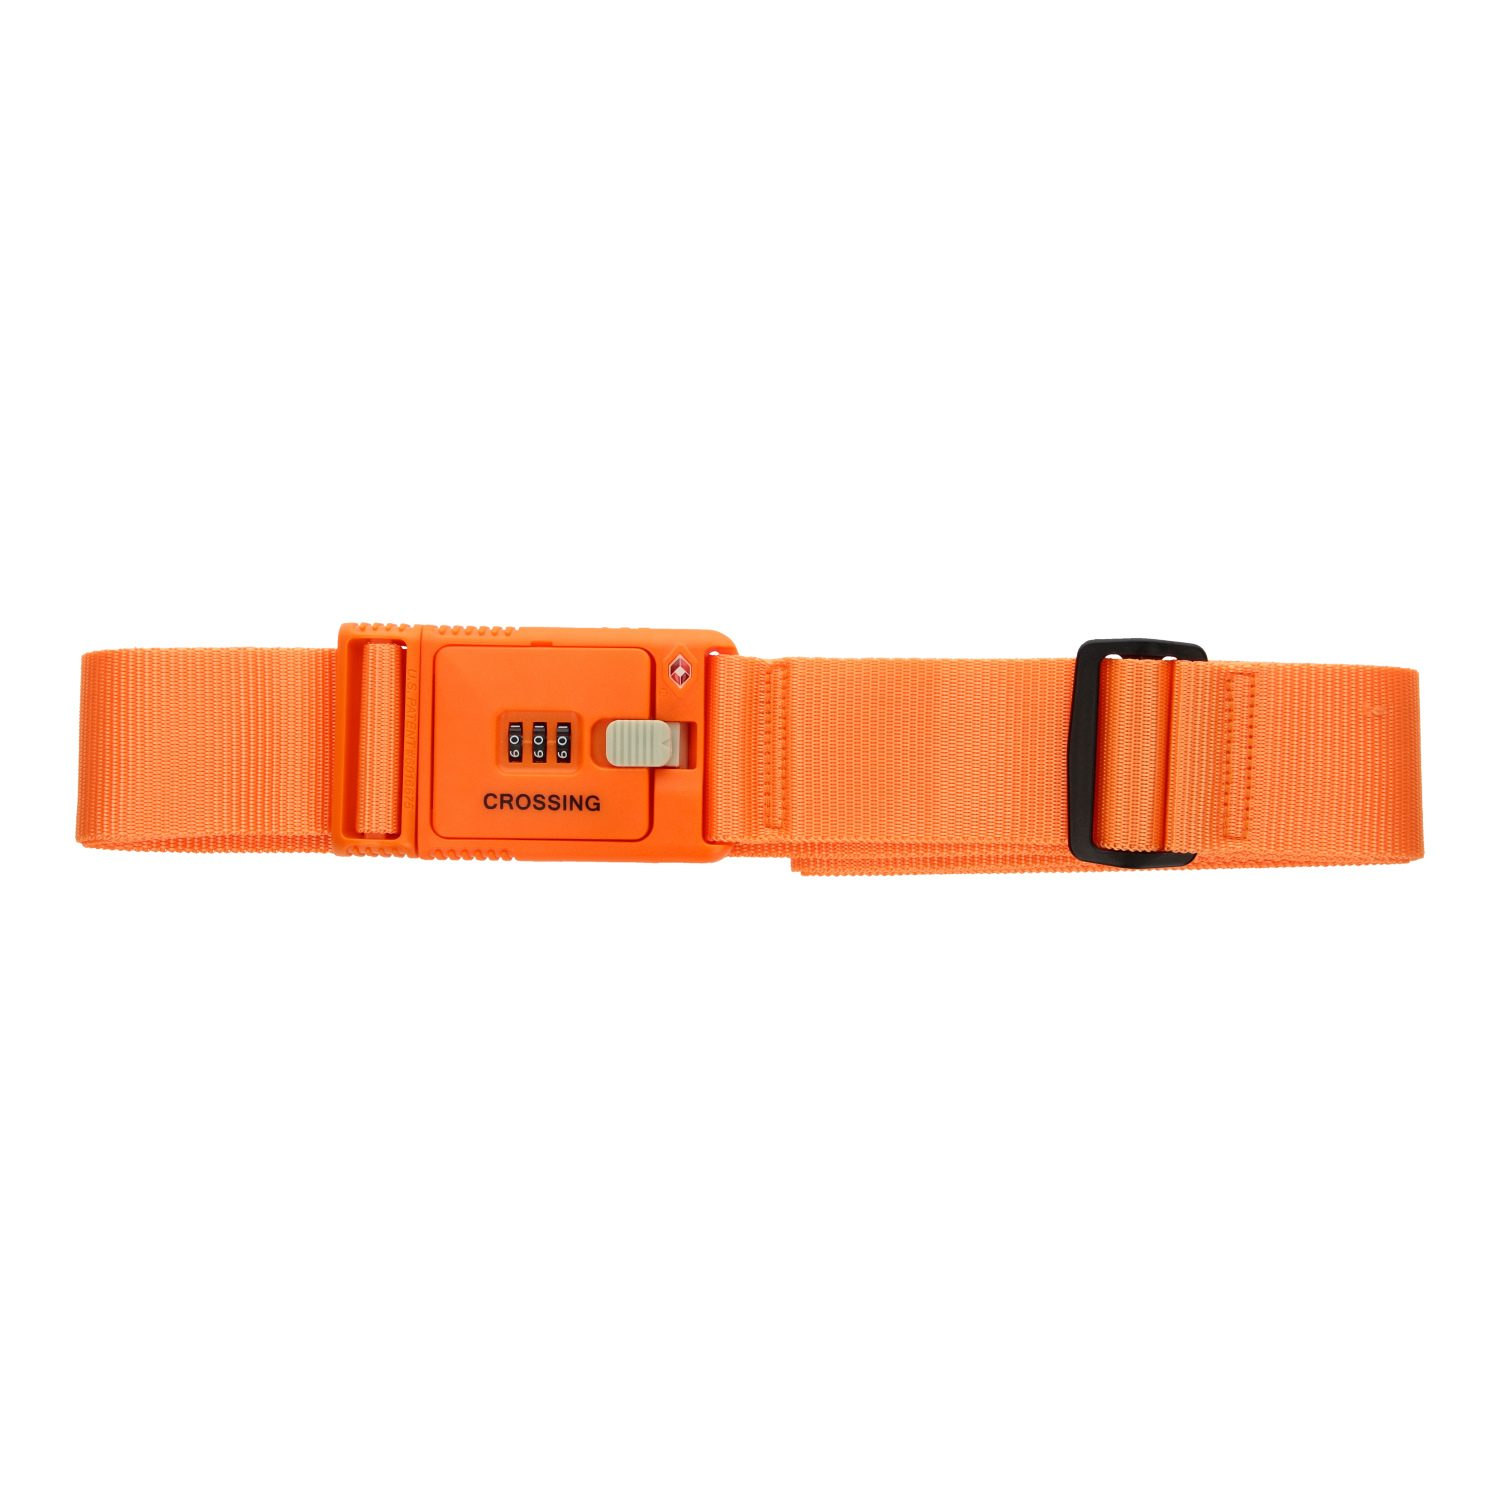 ASHLEY Luggage Strap with Combination Lock